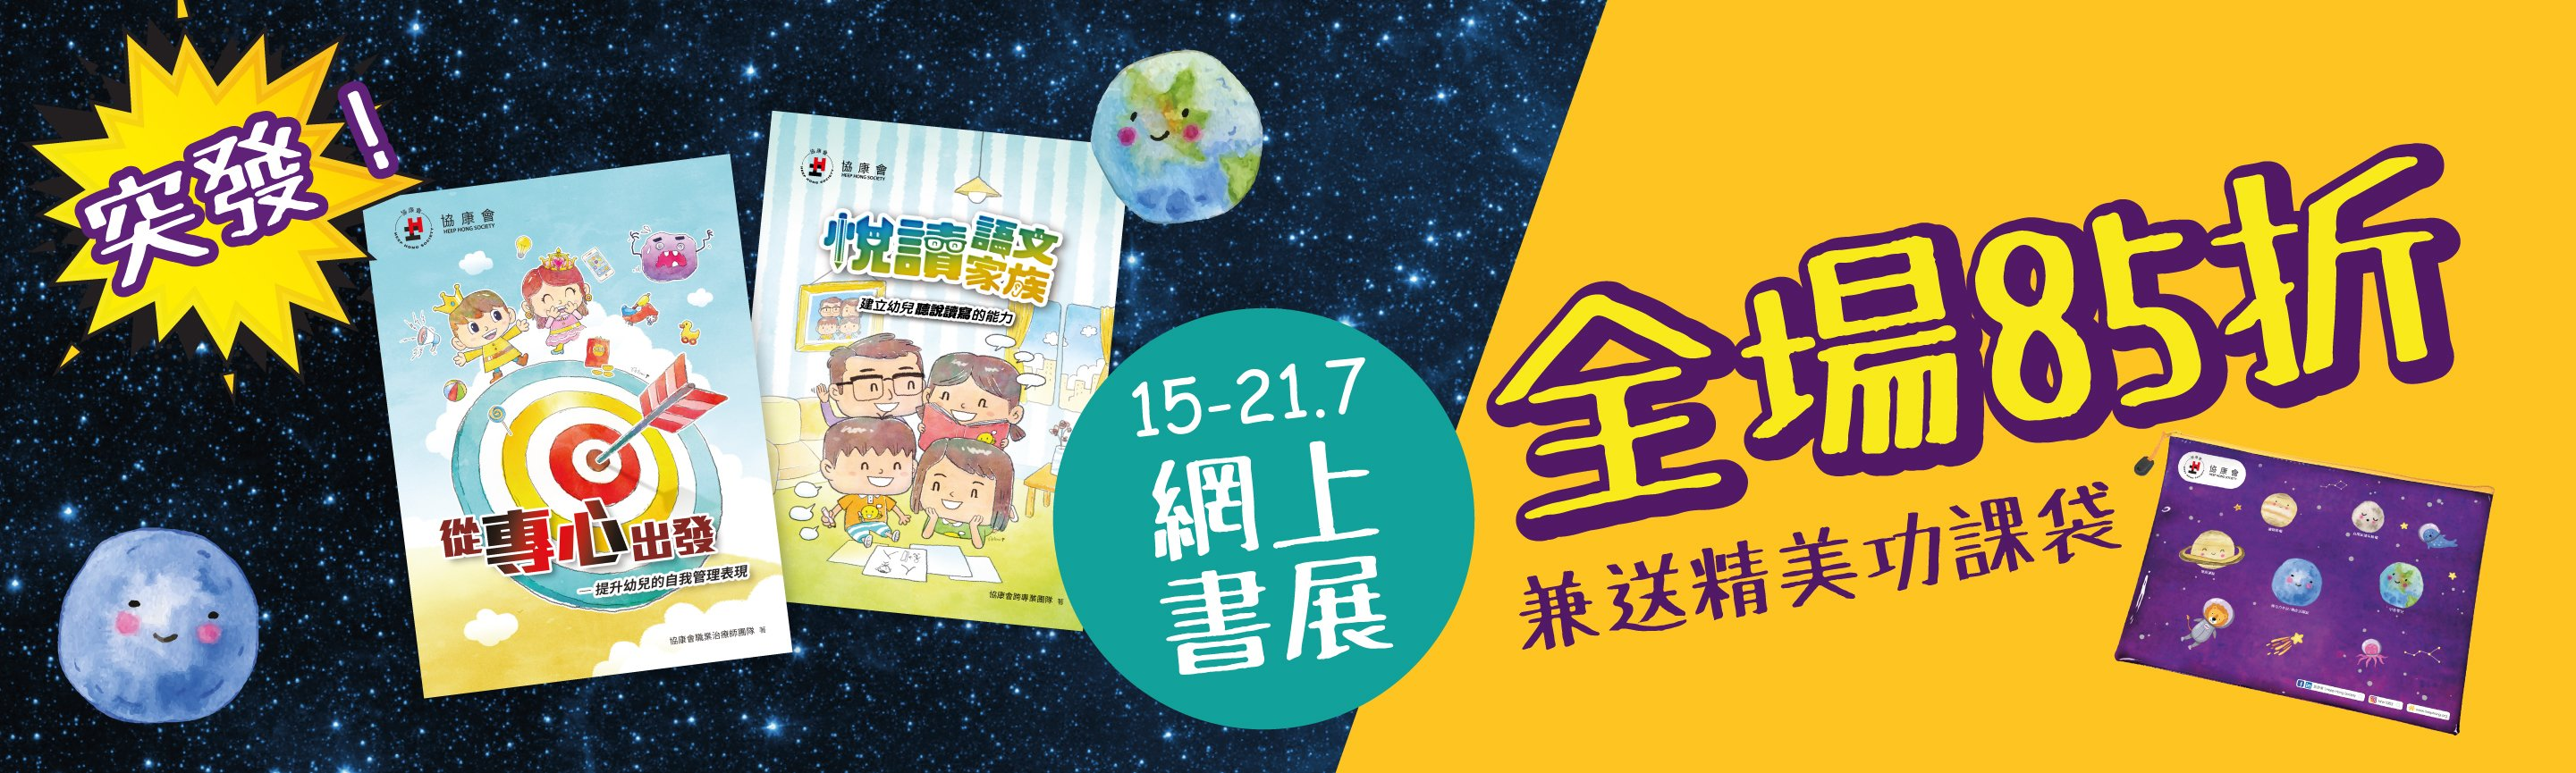 Bookfair promotion